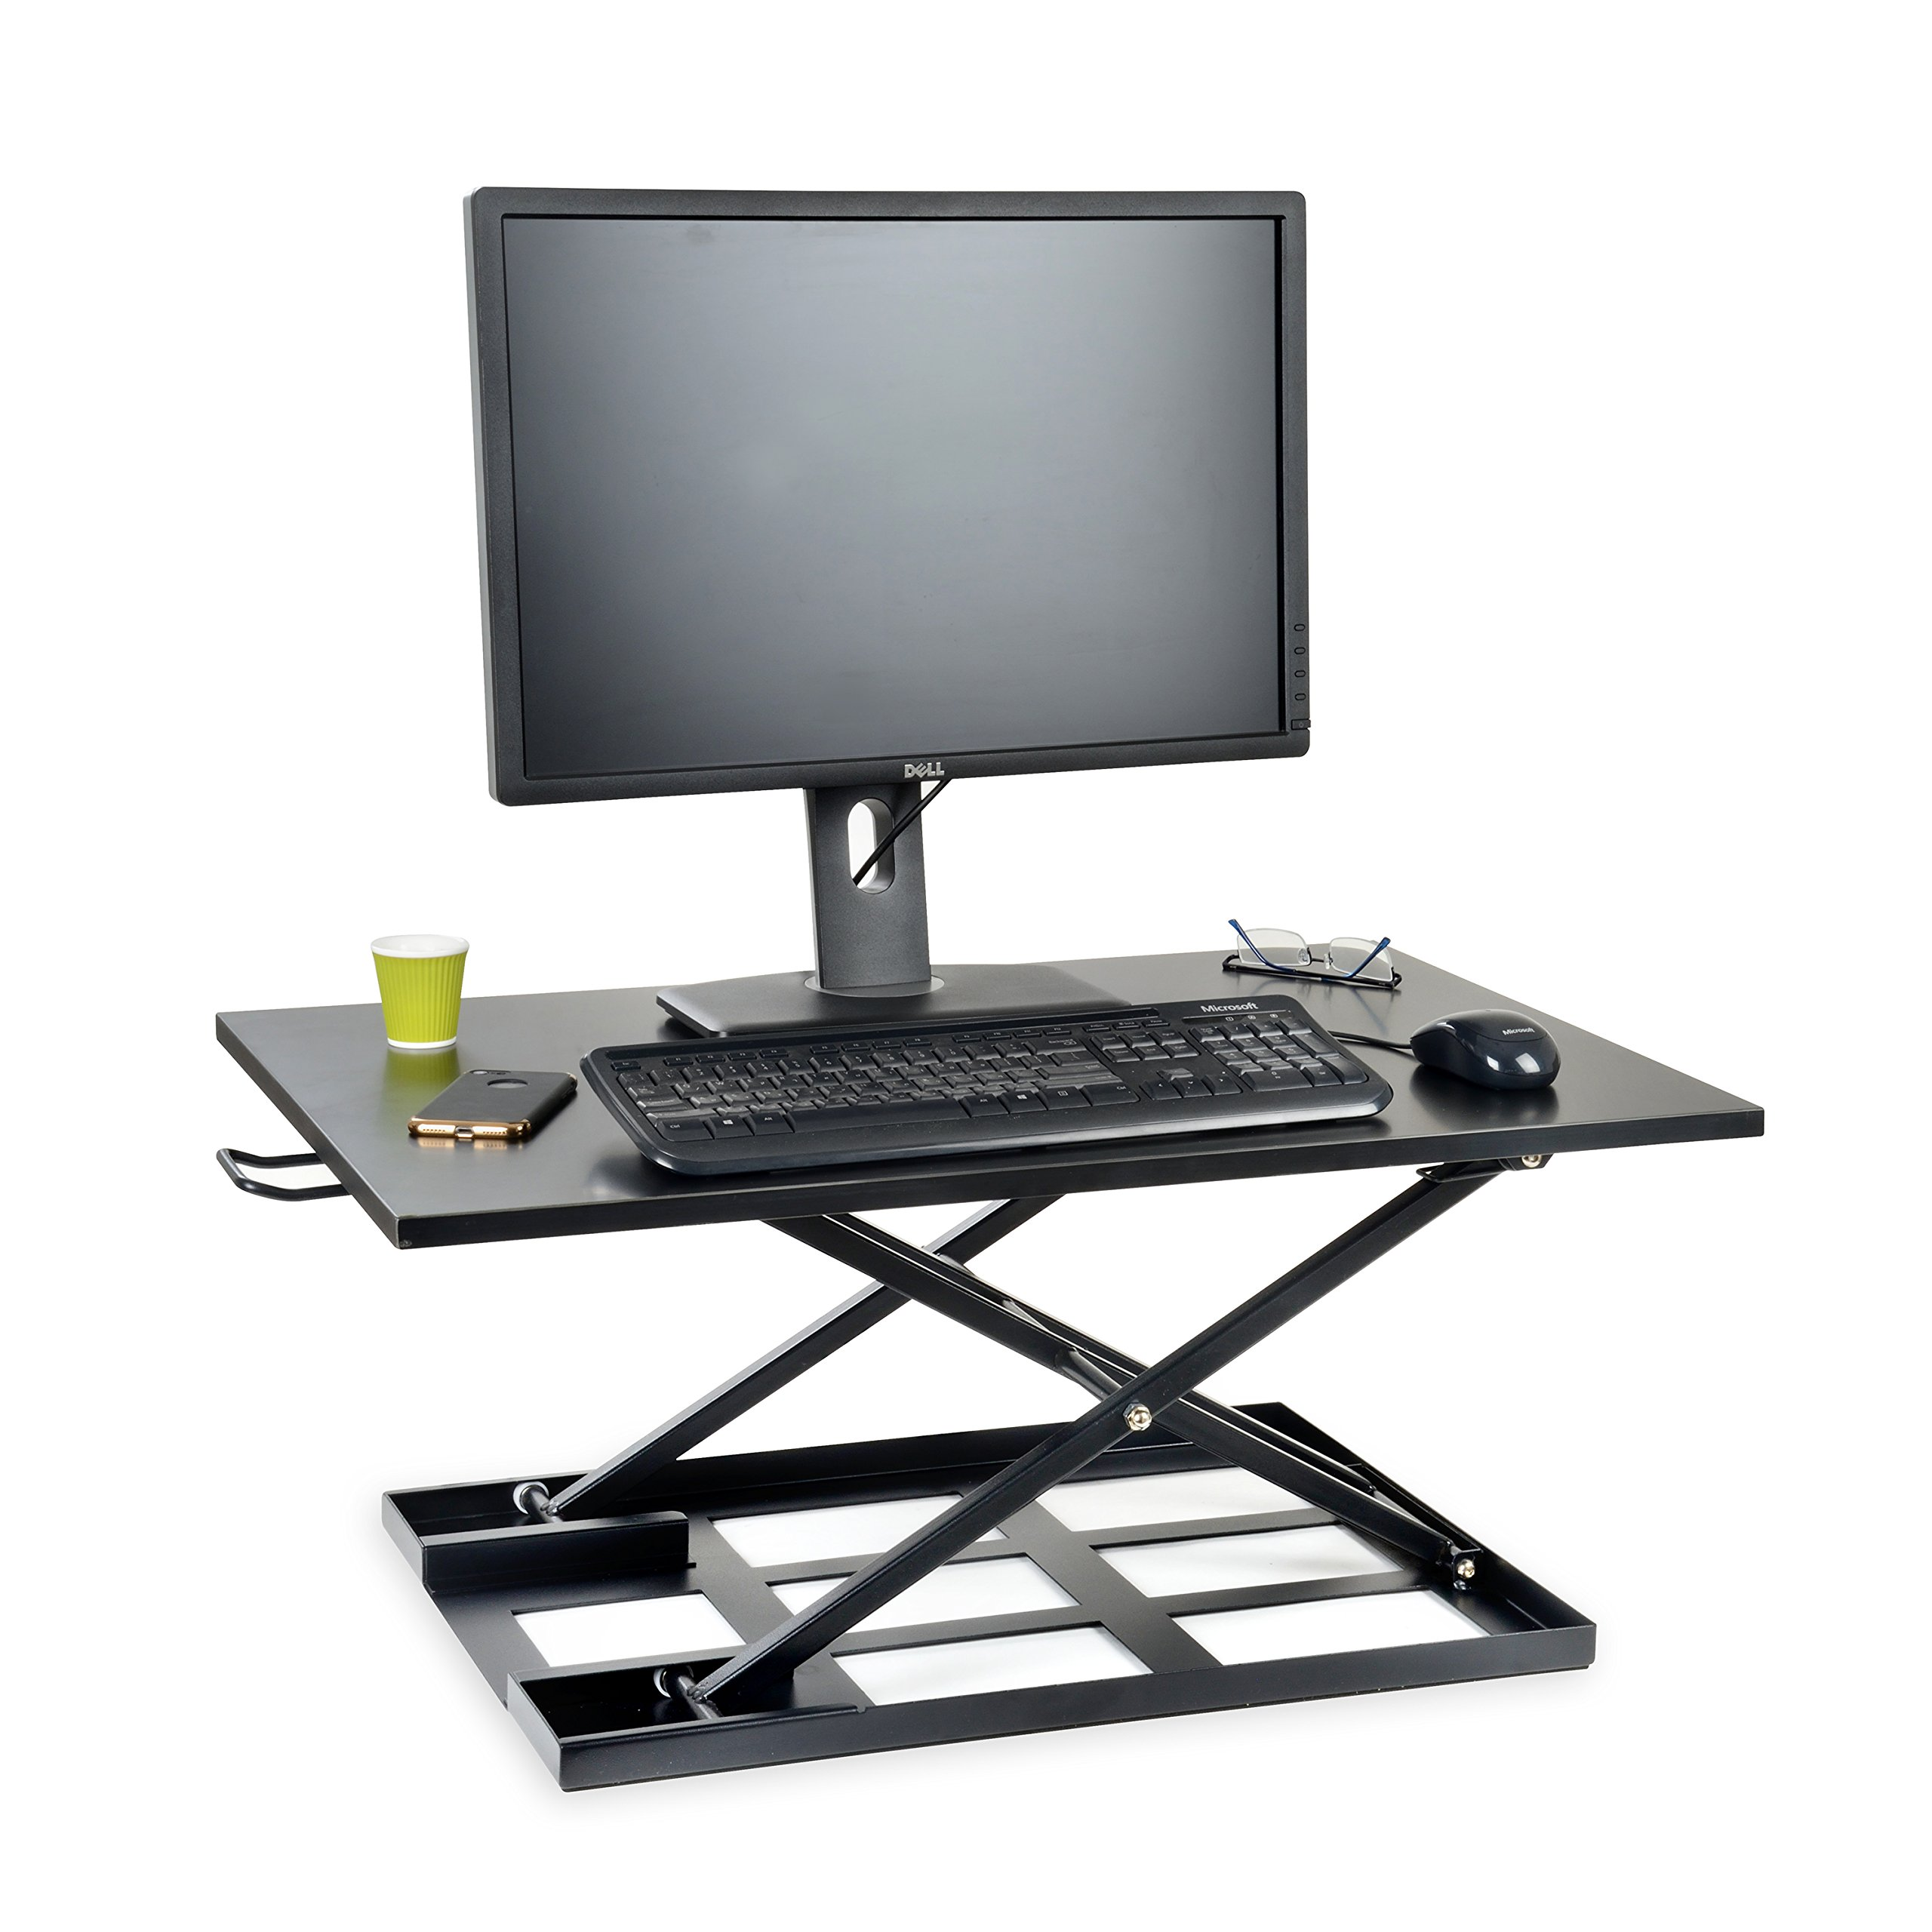 Best Standing Desk, Adjustable Height Riser Converter, Stand Up or Sit Down, 32'' Black Office Desktop, Computer Monitor & Laptop Workspace, Unlimited Ergonomic Positions for Better Health, Casiii UP32 by Casiii (Image #1)